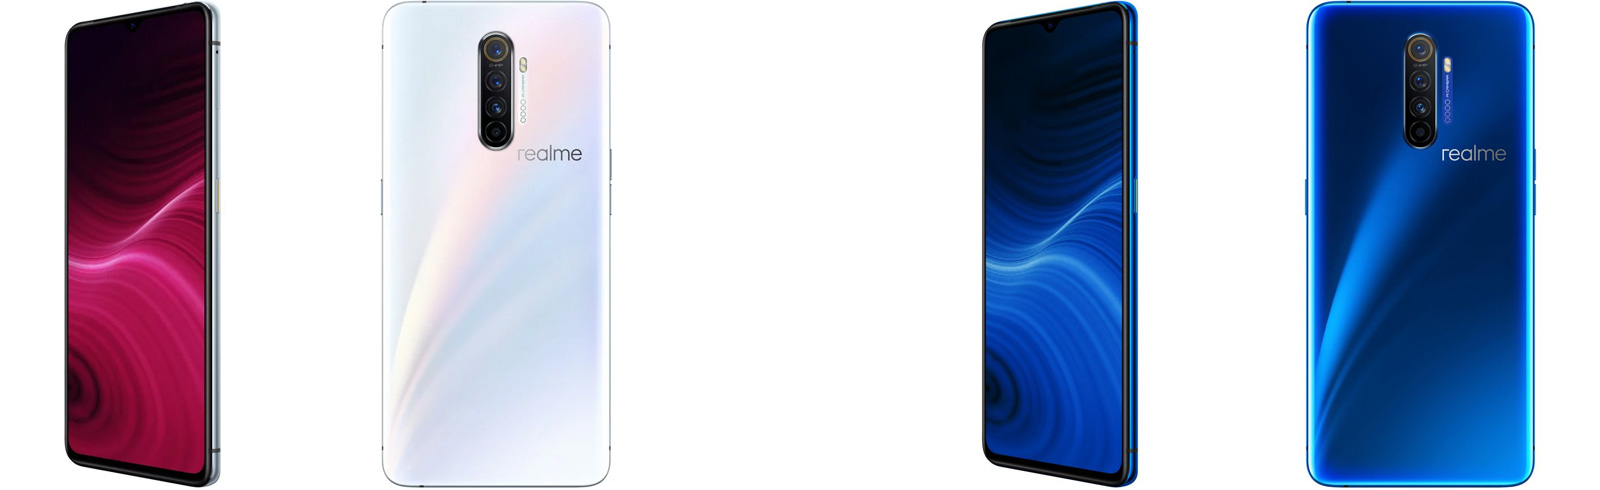 Realme X2 Pro is finally official, prices start at USD 367